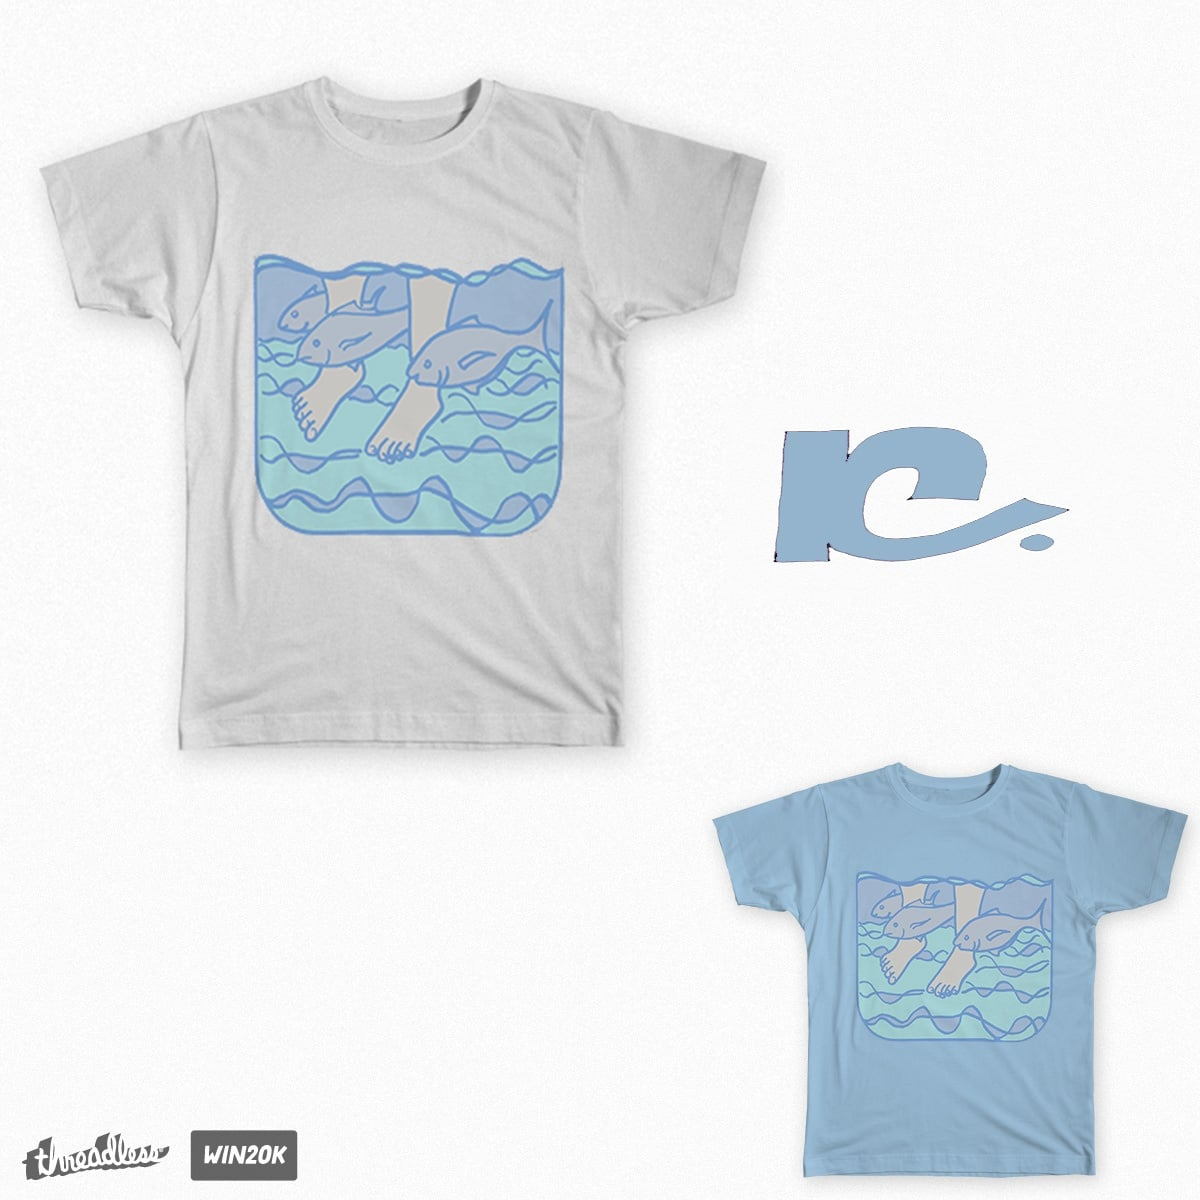 Wading with the fishes by Kettleheadmex on Threadless